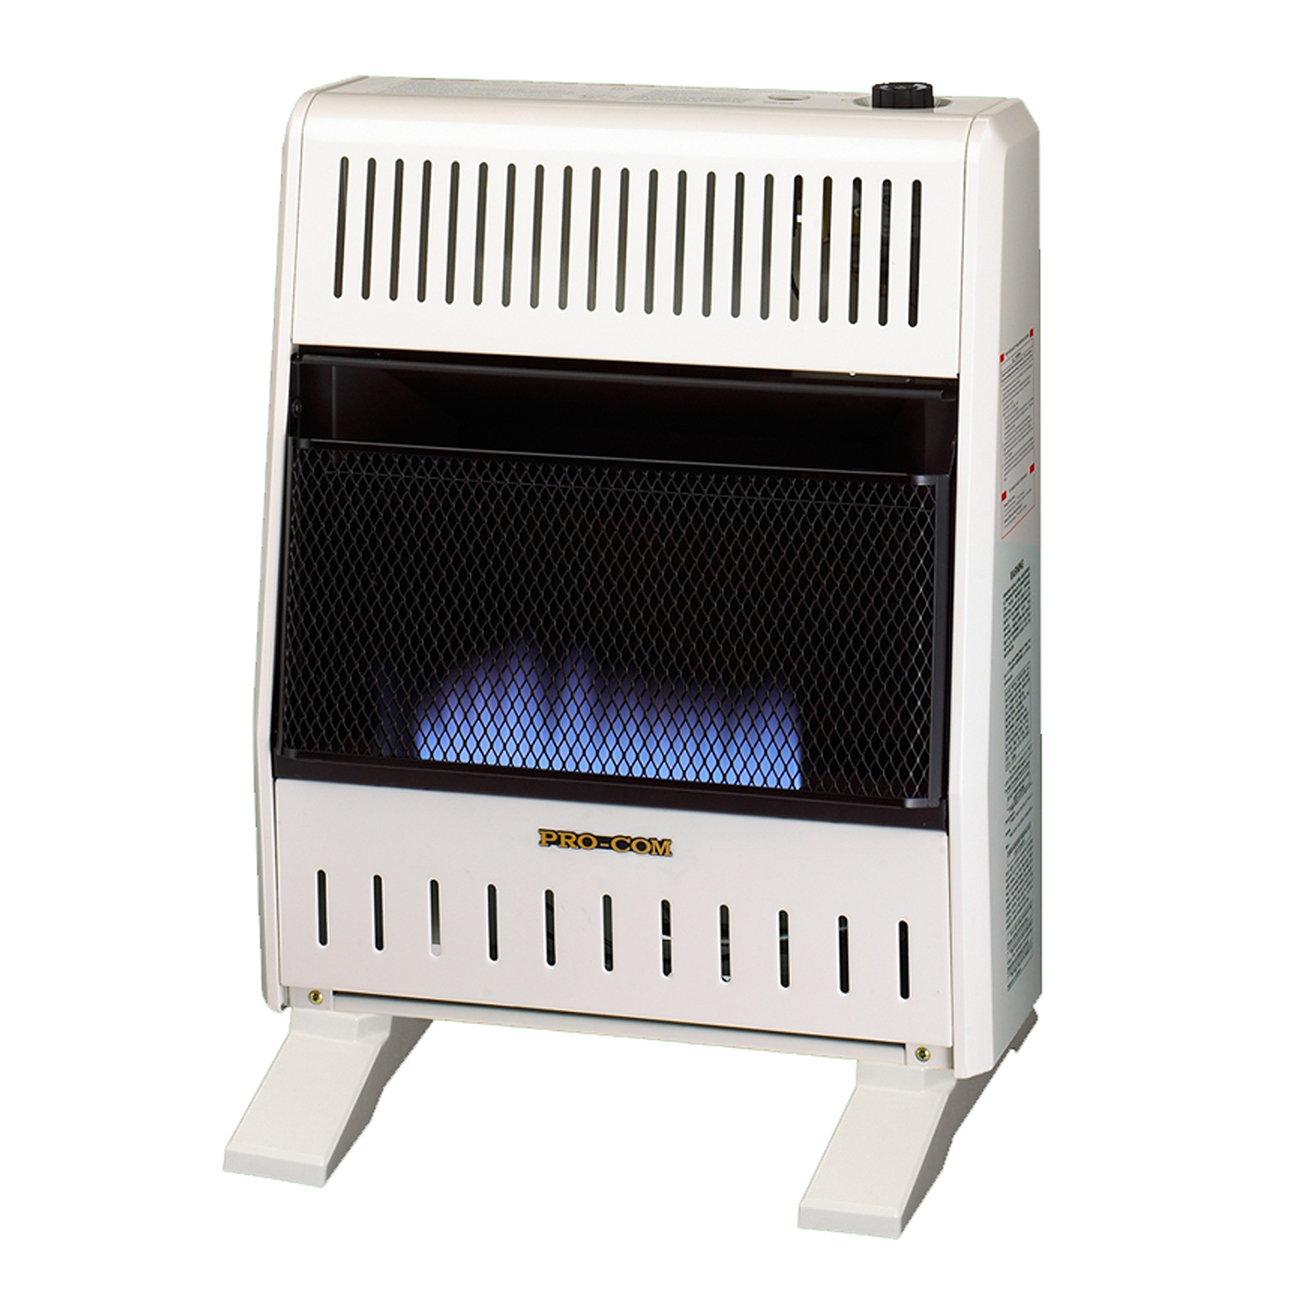 Dual Fuel Blue Flame Ventless Wall Heater  20,000 Btu